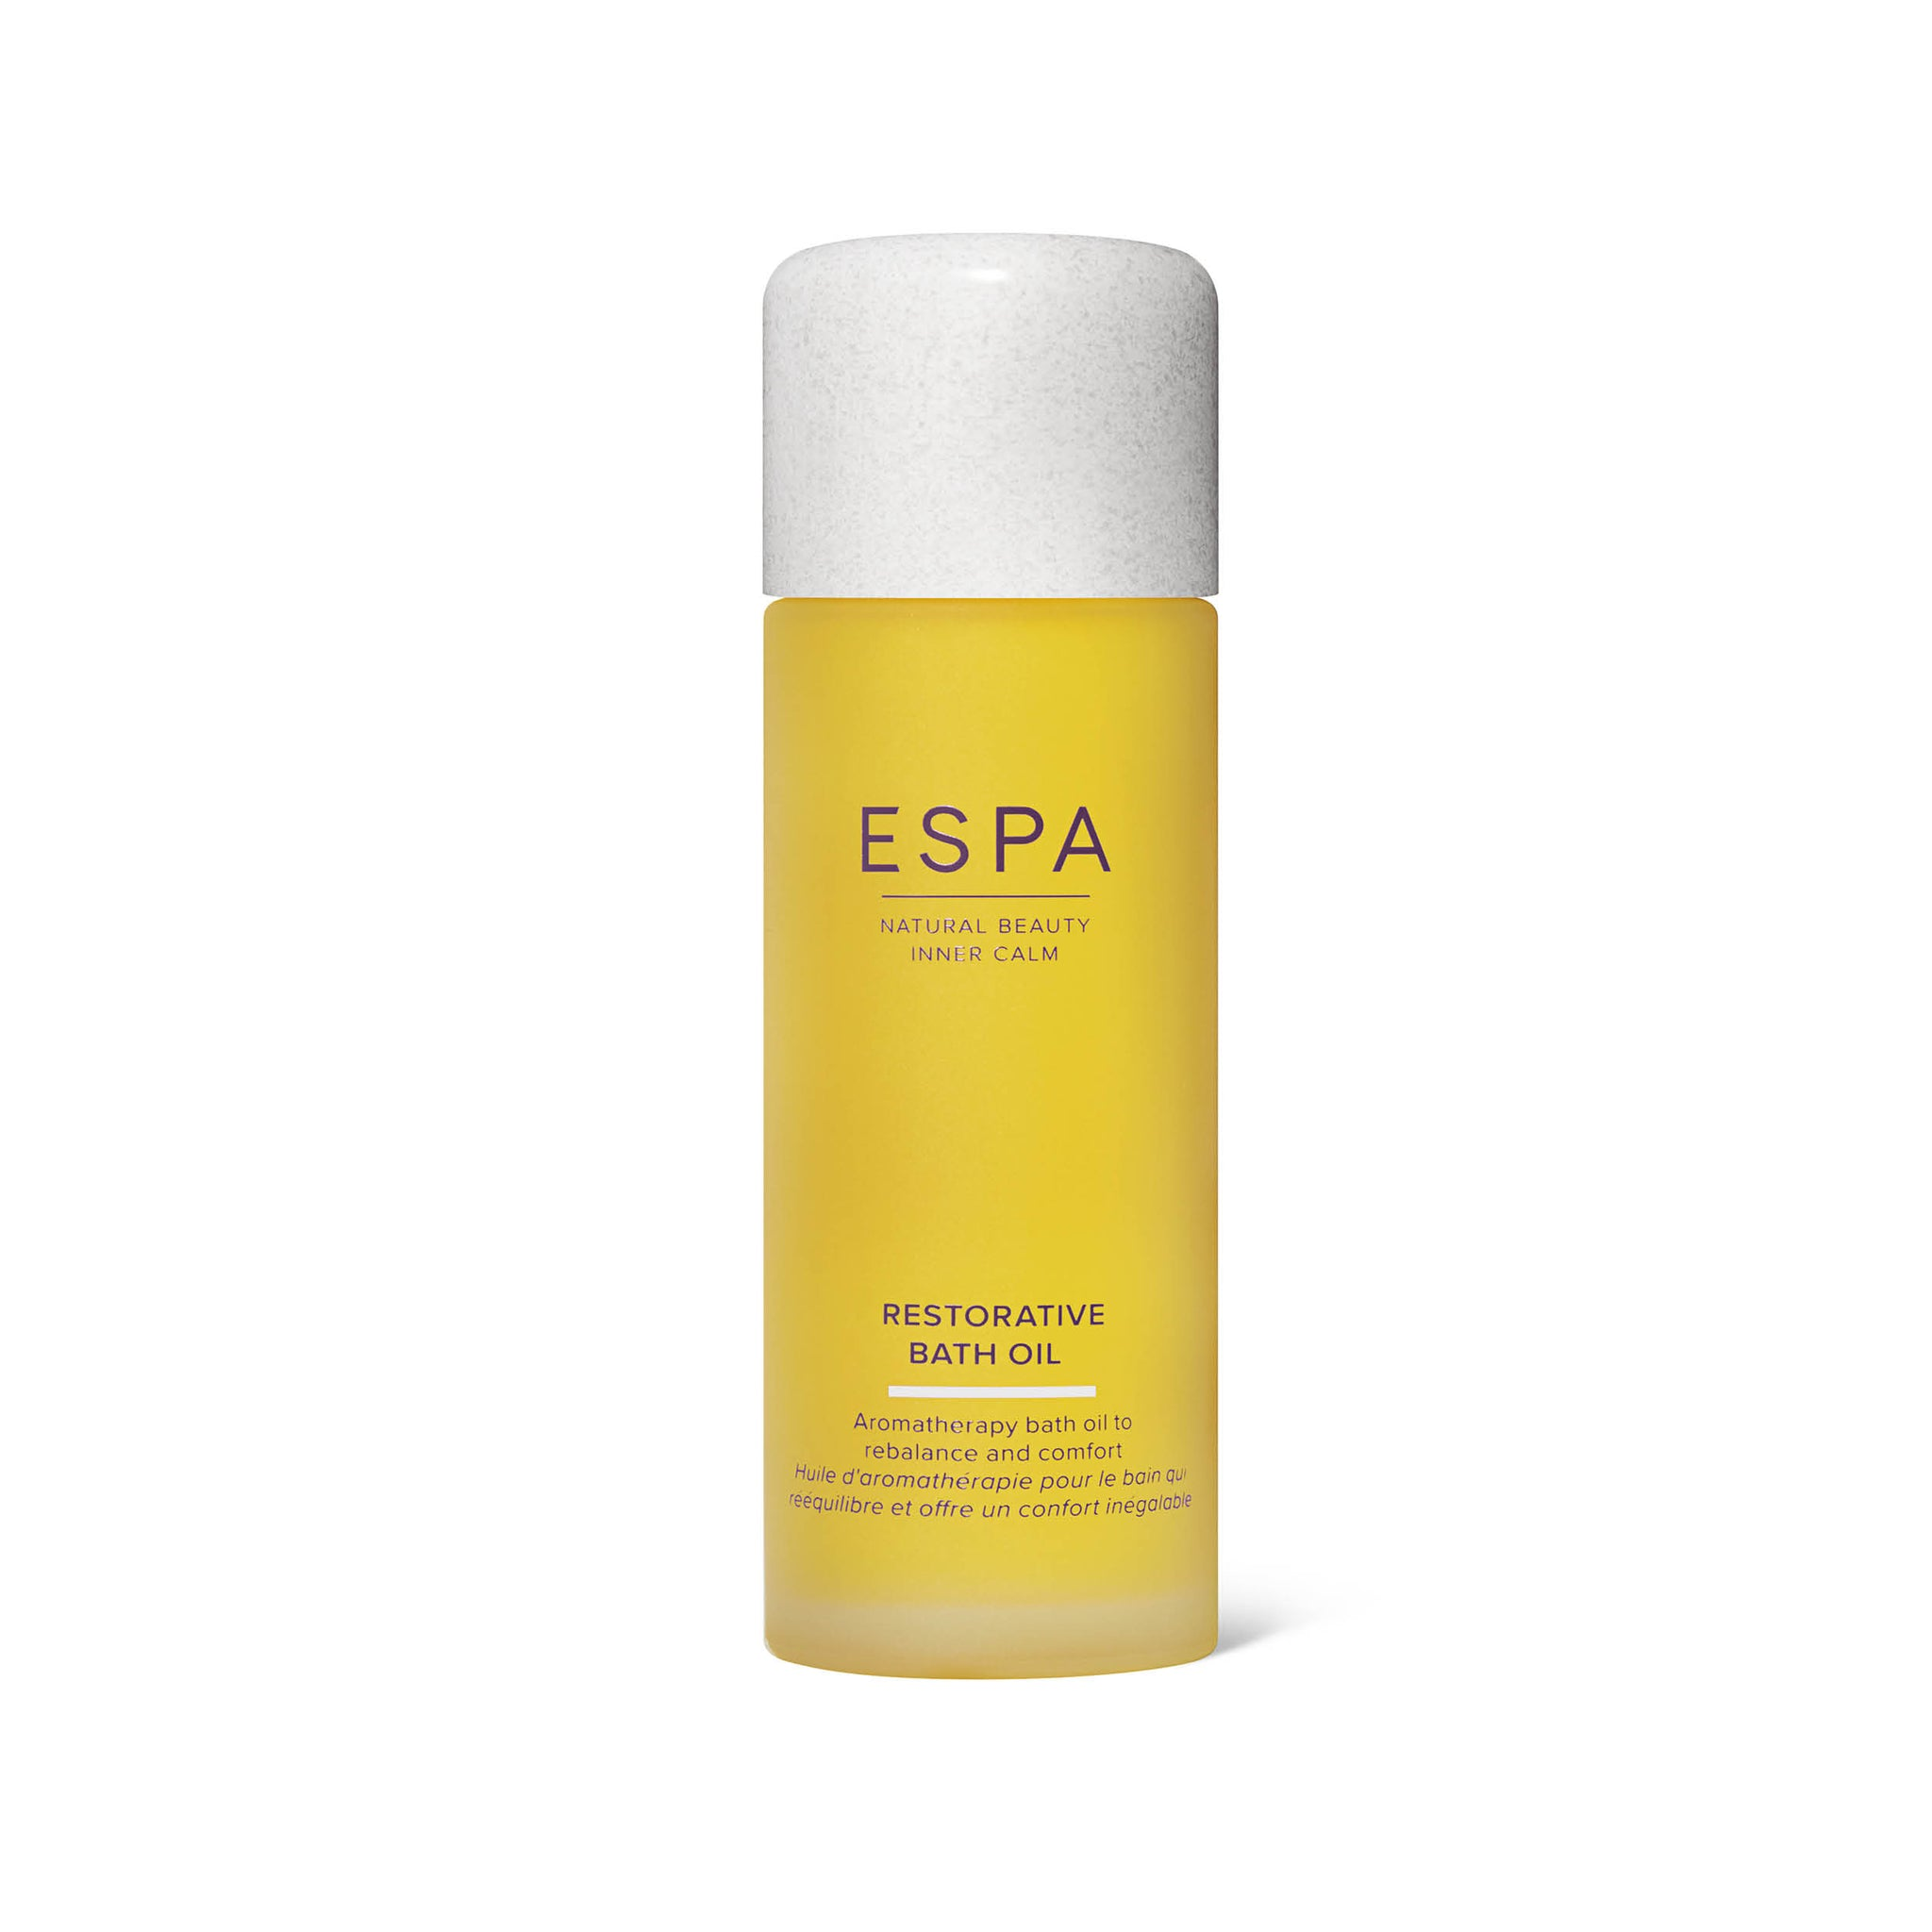 ESPA Restorative Bath Oil